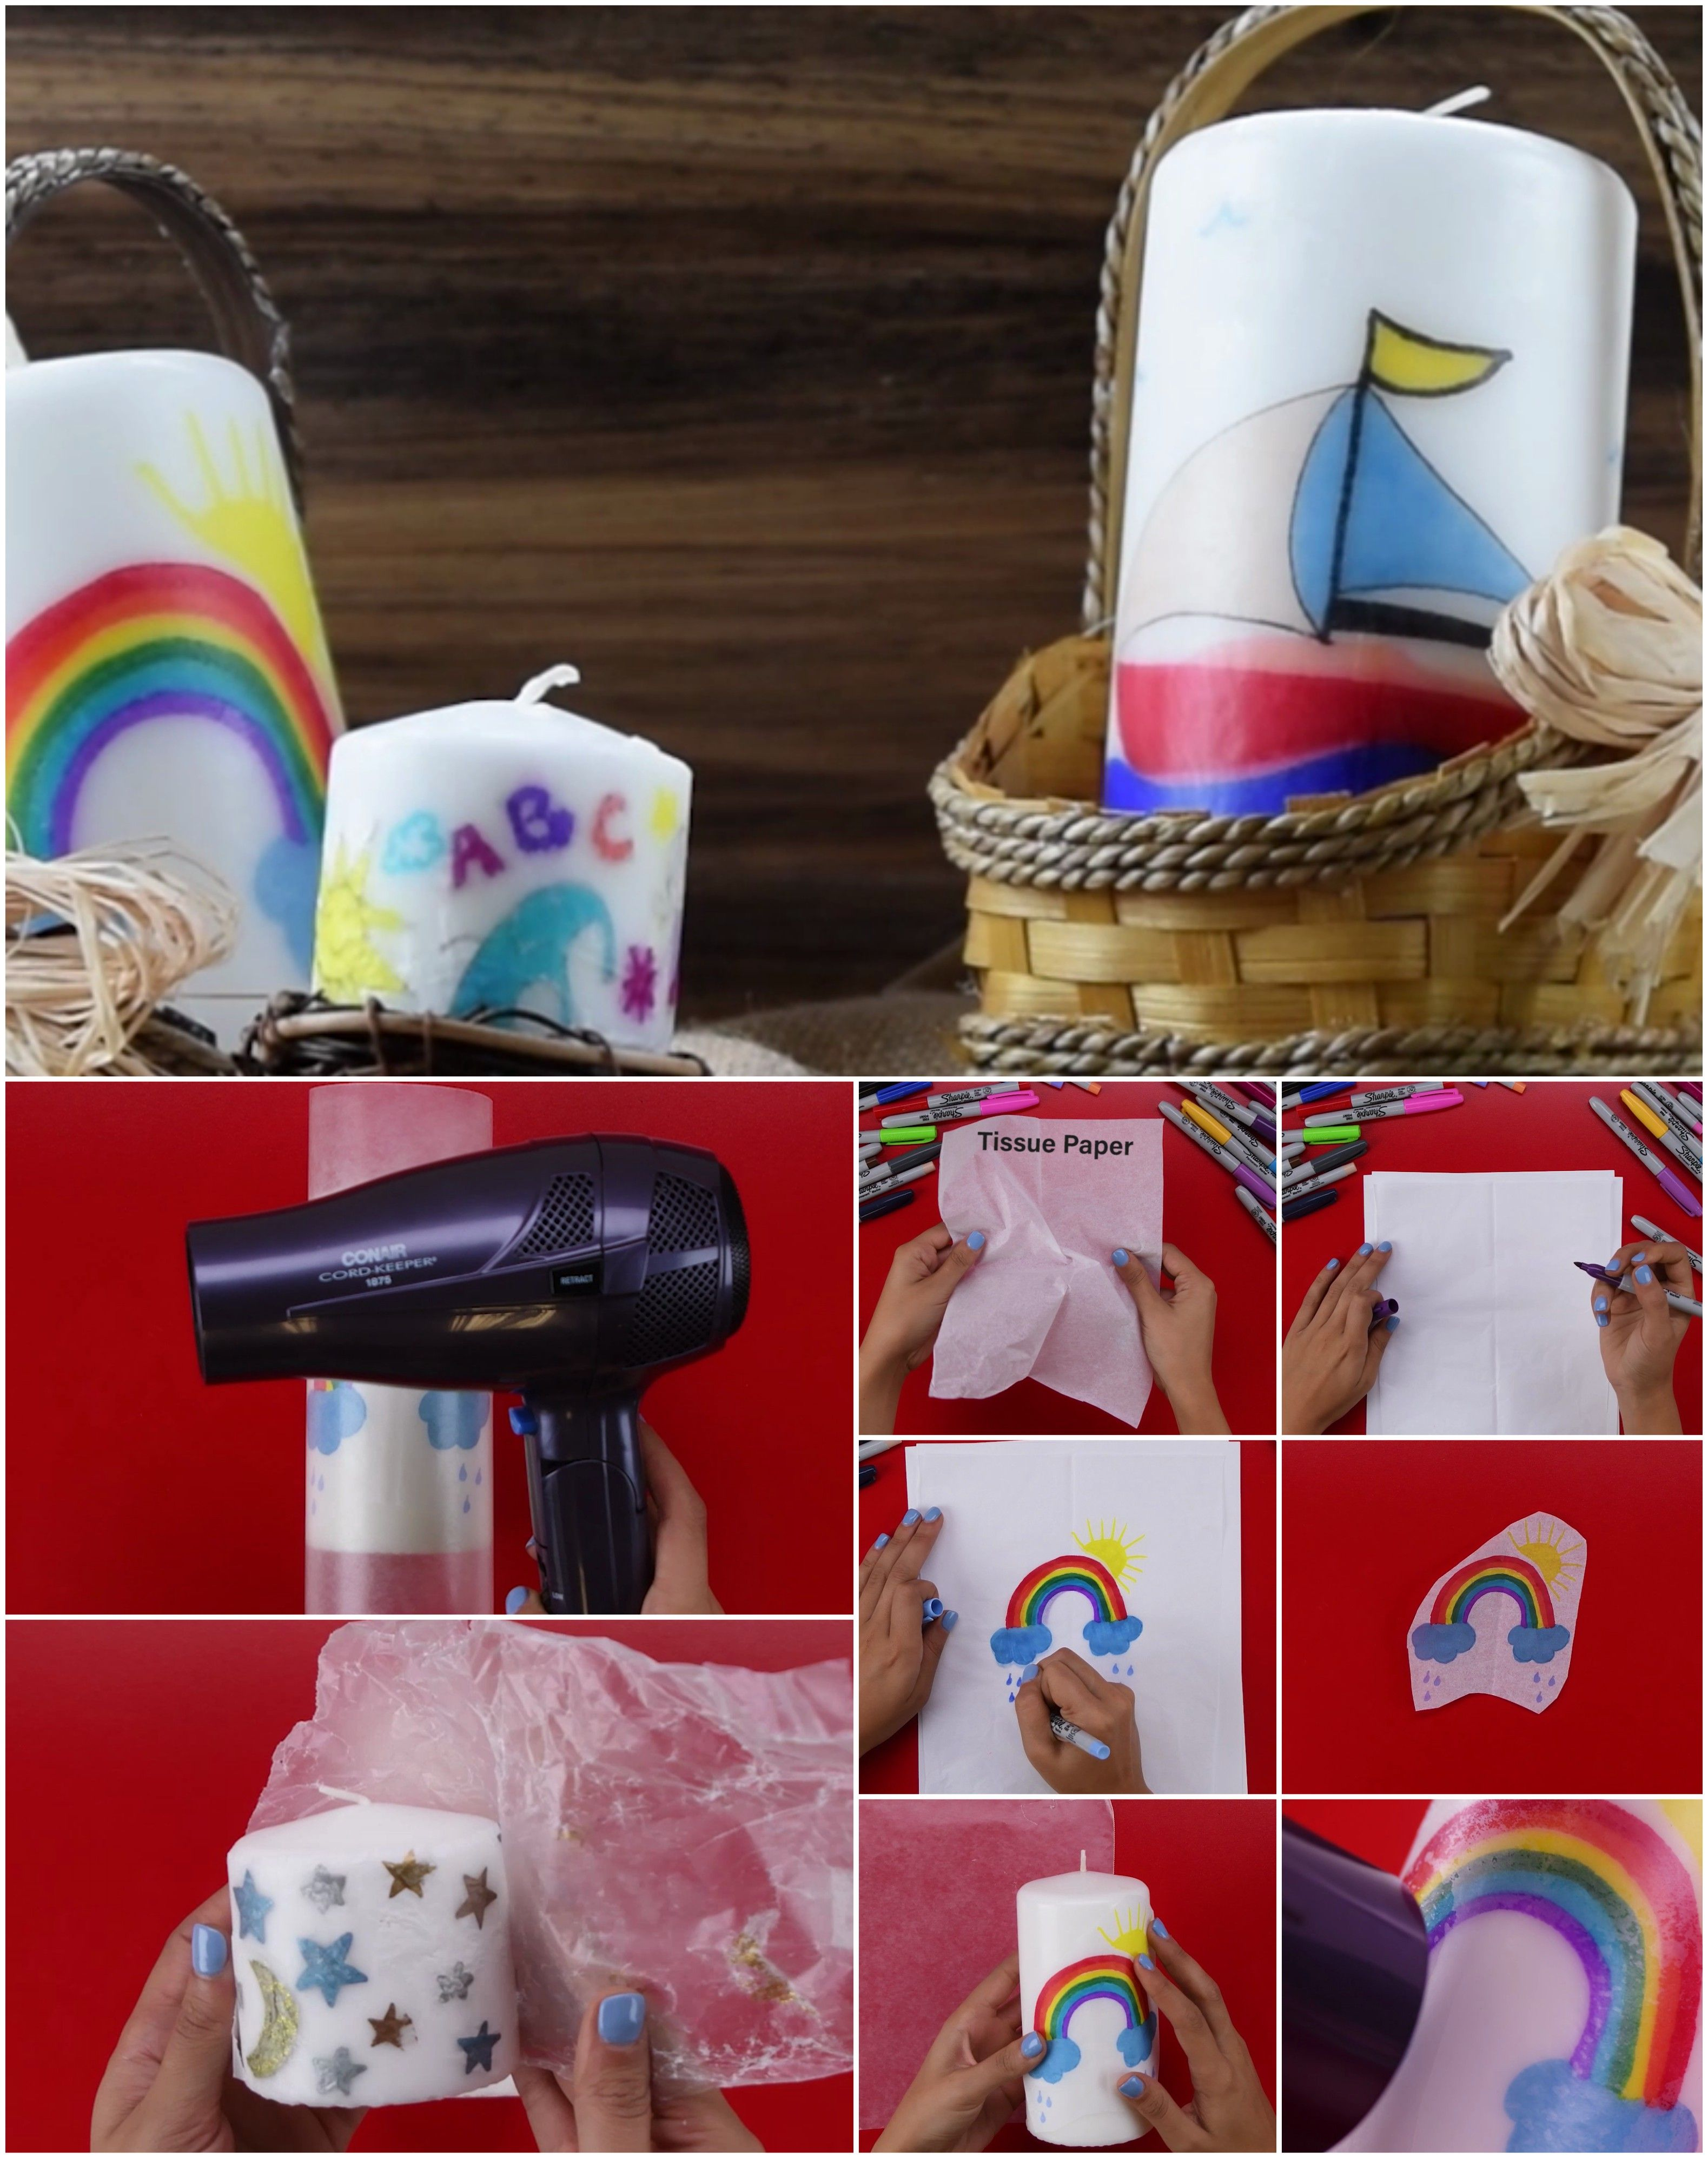 Creative diy idea how to transfer pictures from tissue